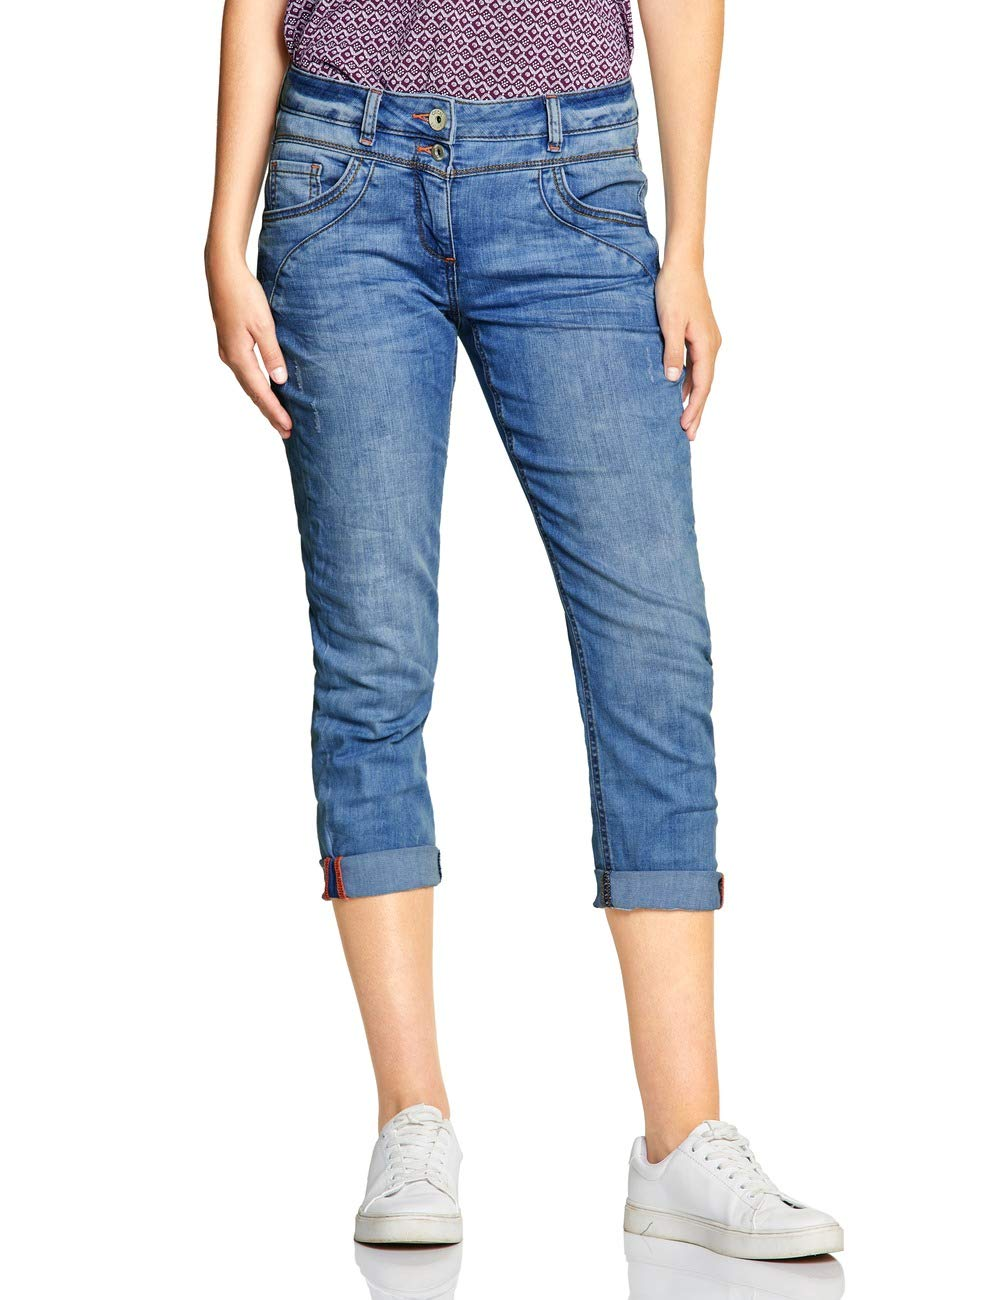 Cecil Fabricant33Femme l26taille Scarlett Used 372299 Wash Jean 10239W33 DroitBleuauthentic vm8nwOyN0